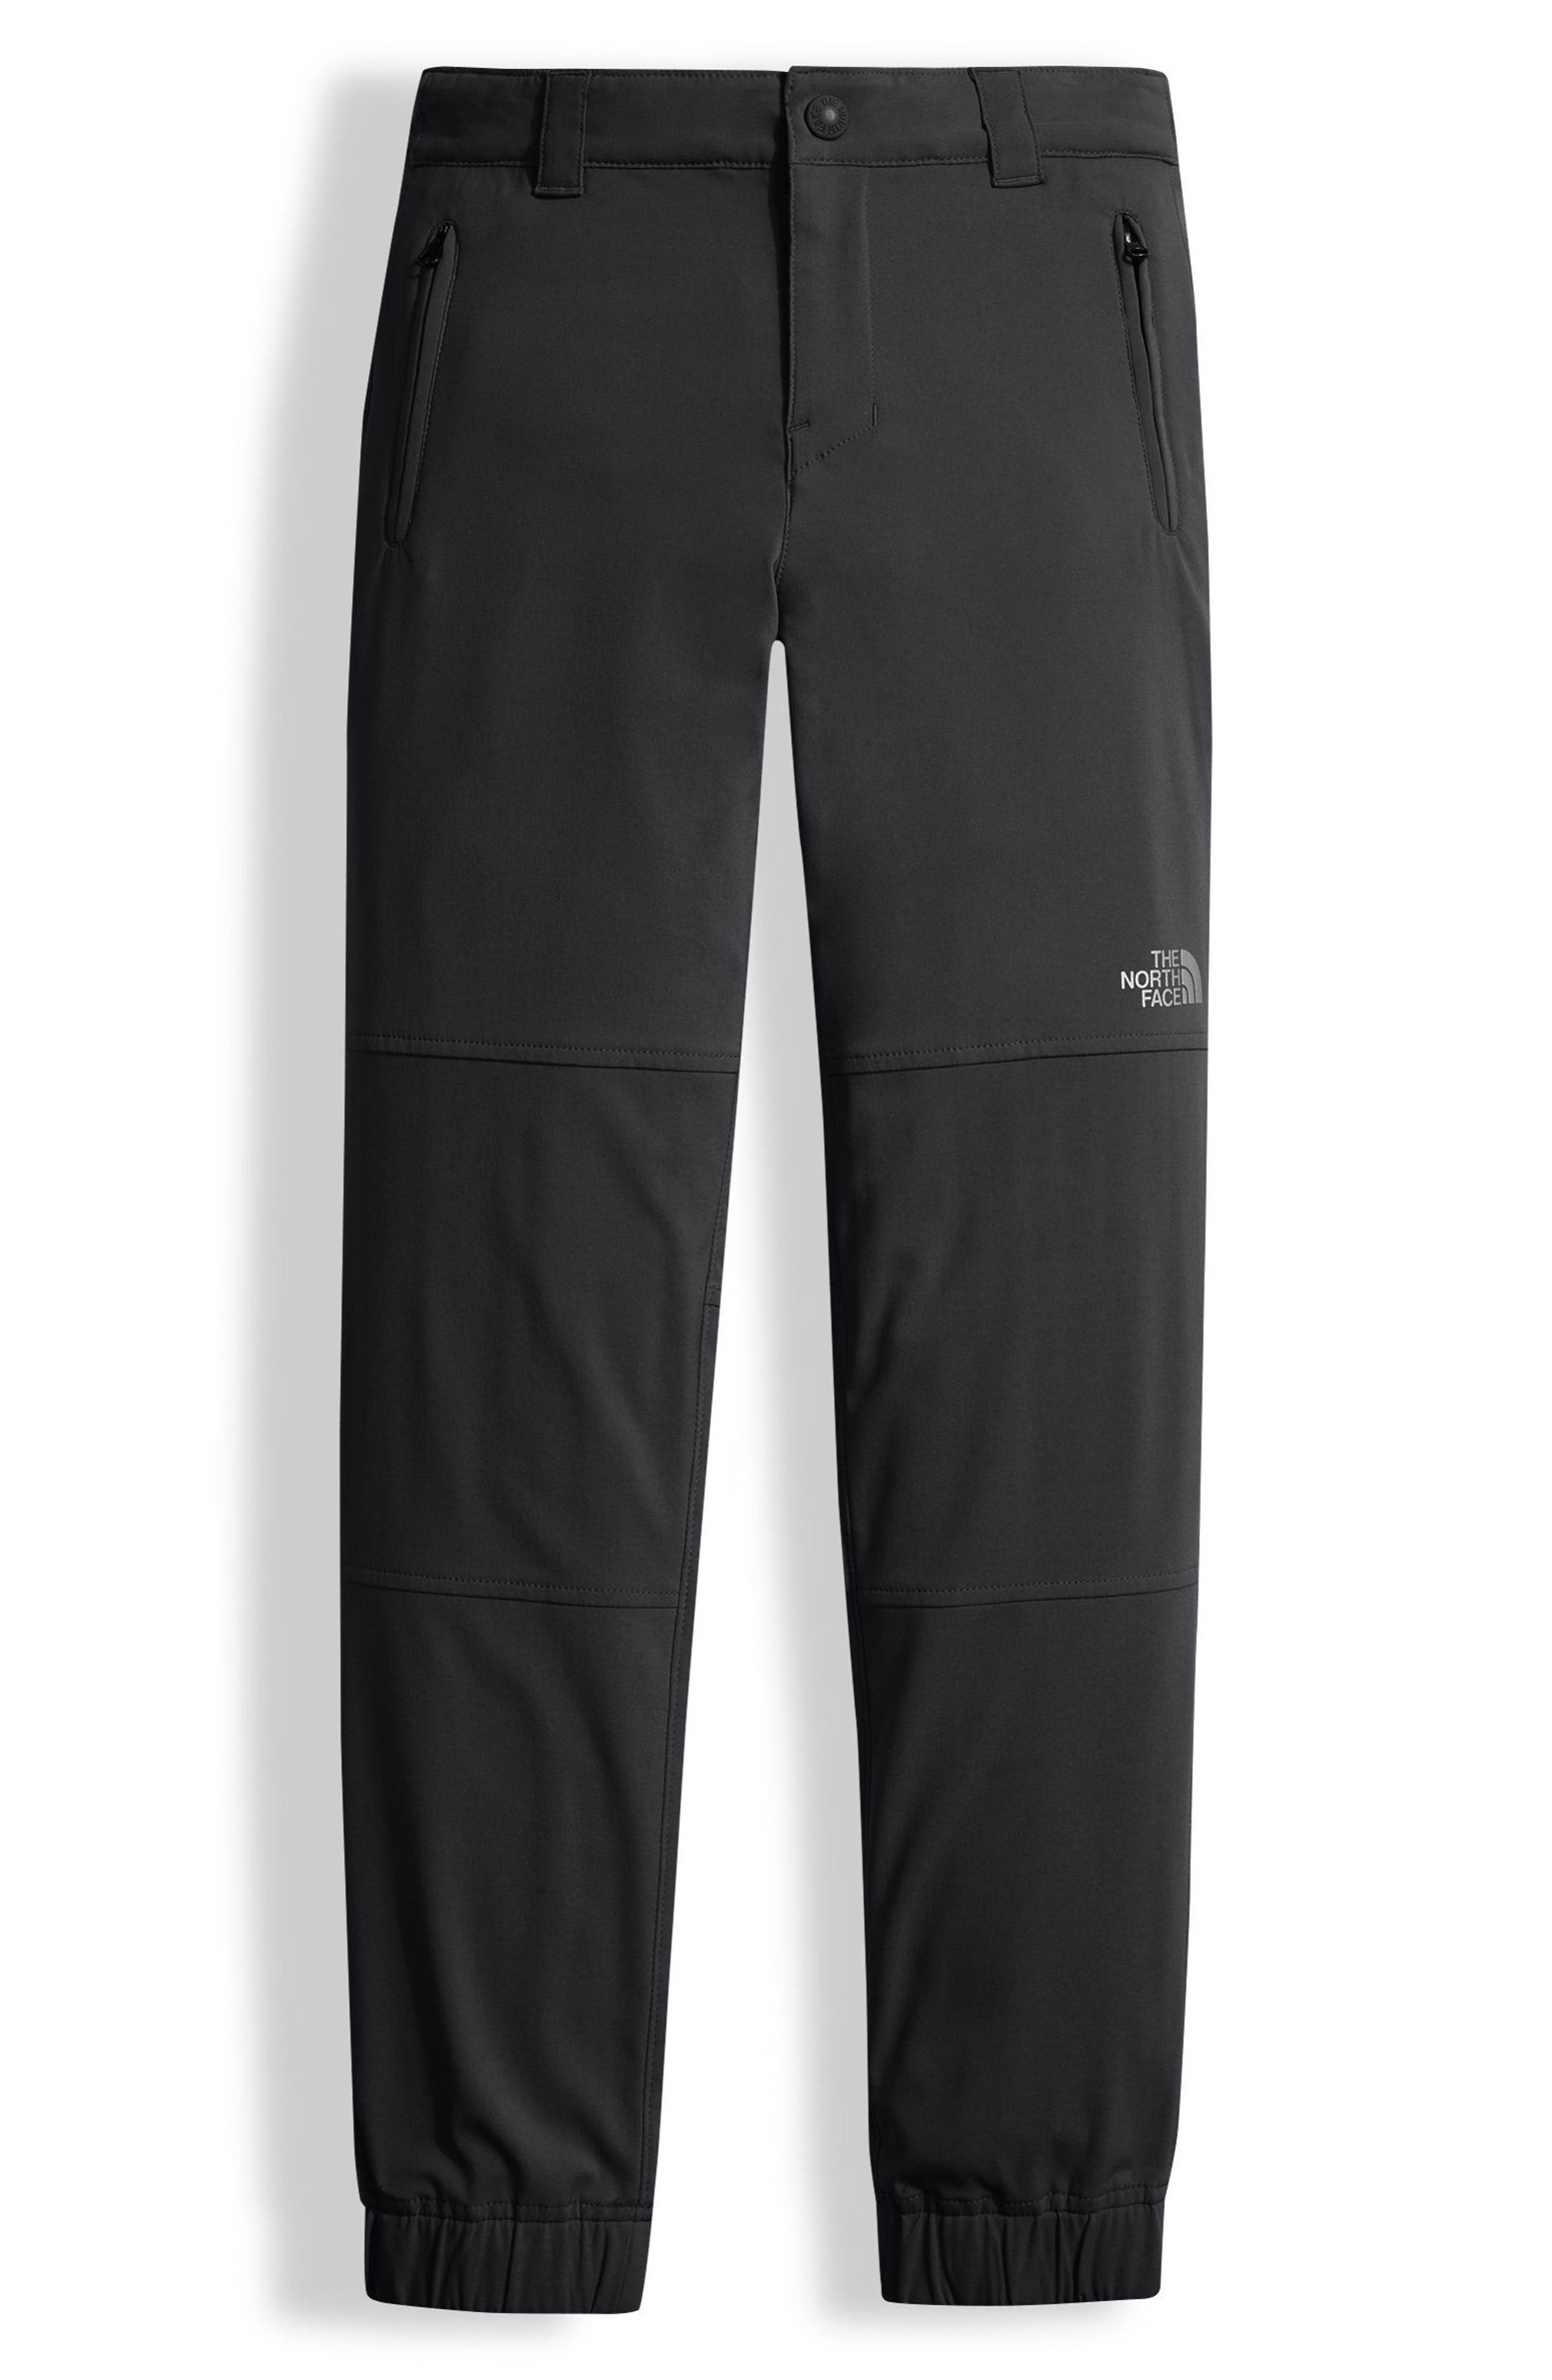 Main Image - The North Face Carson Regular Fit Water Repellent Pants (Big Boys)